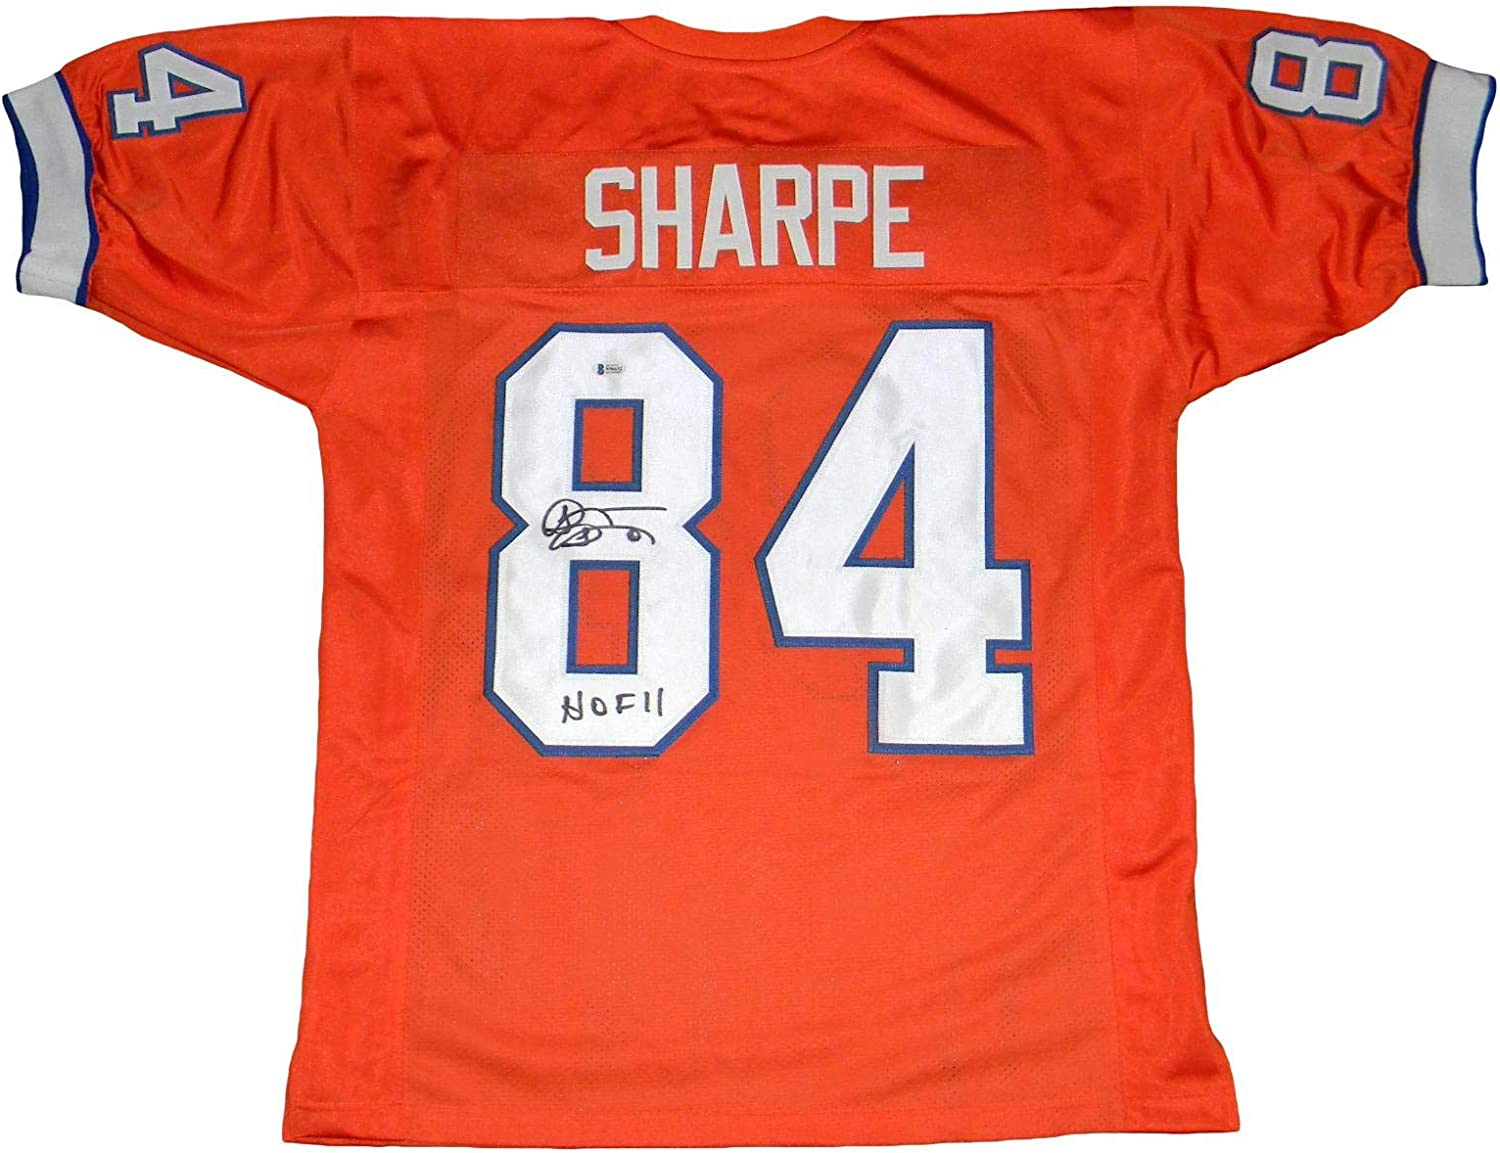 shannon sharpe jersey, OFF 70%,Cheap price!